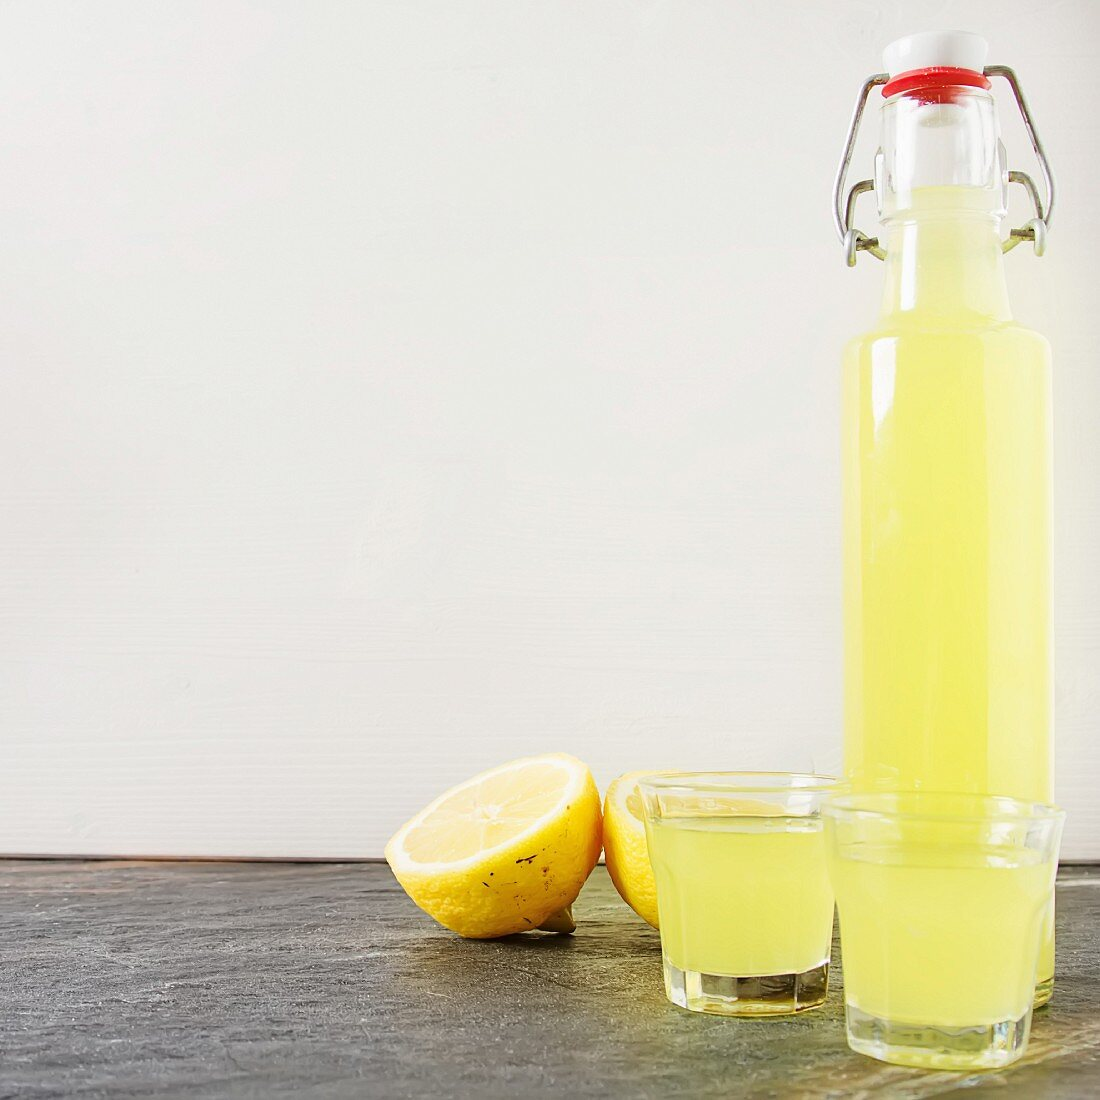 Limoncello in a bottle and glasses